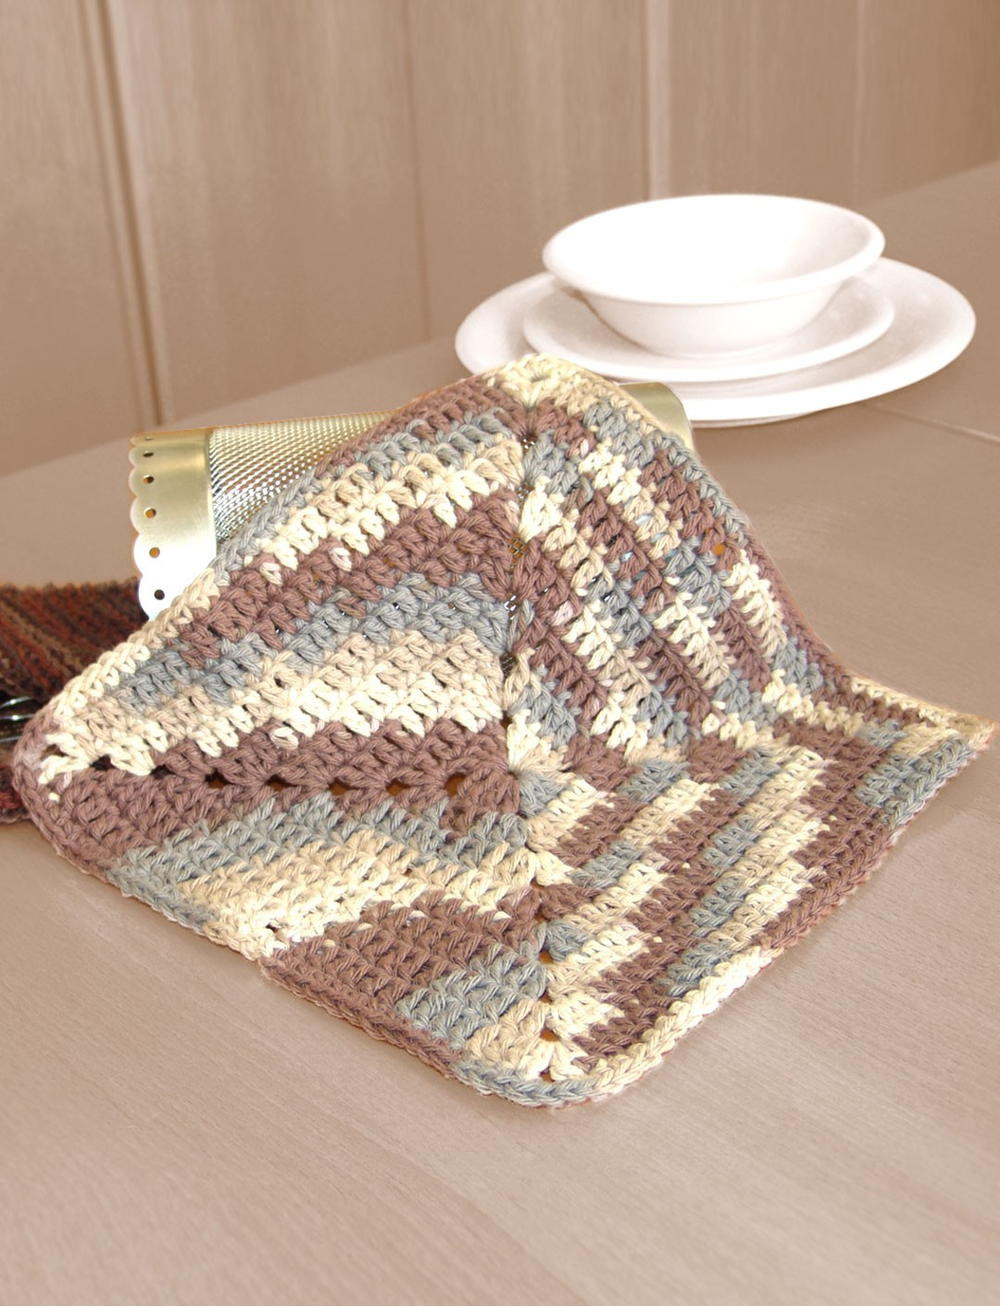 New Easy Ombre Dishcloth Crochet Pattern Dishcloth Patterns Of Charming 41 Images Dishcloth Patterns